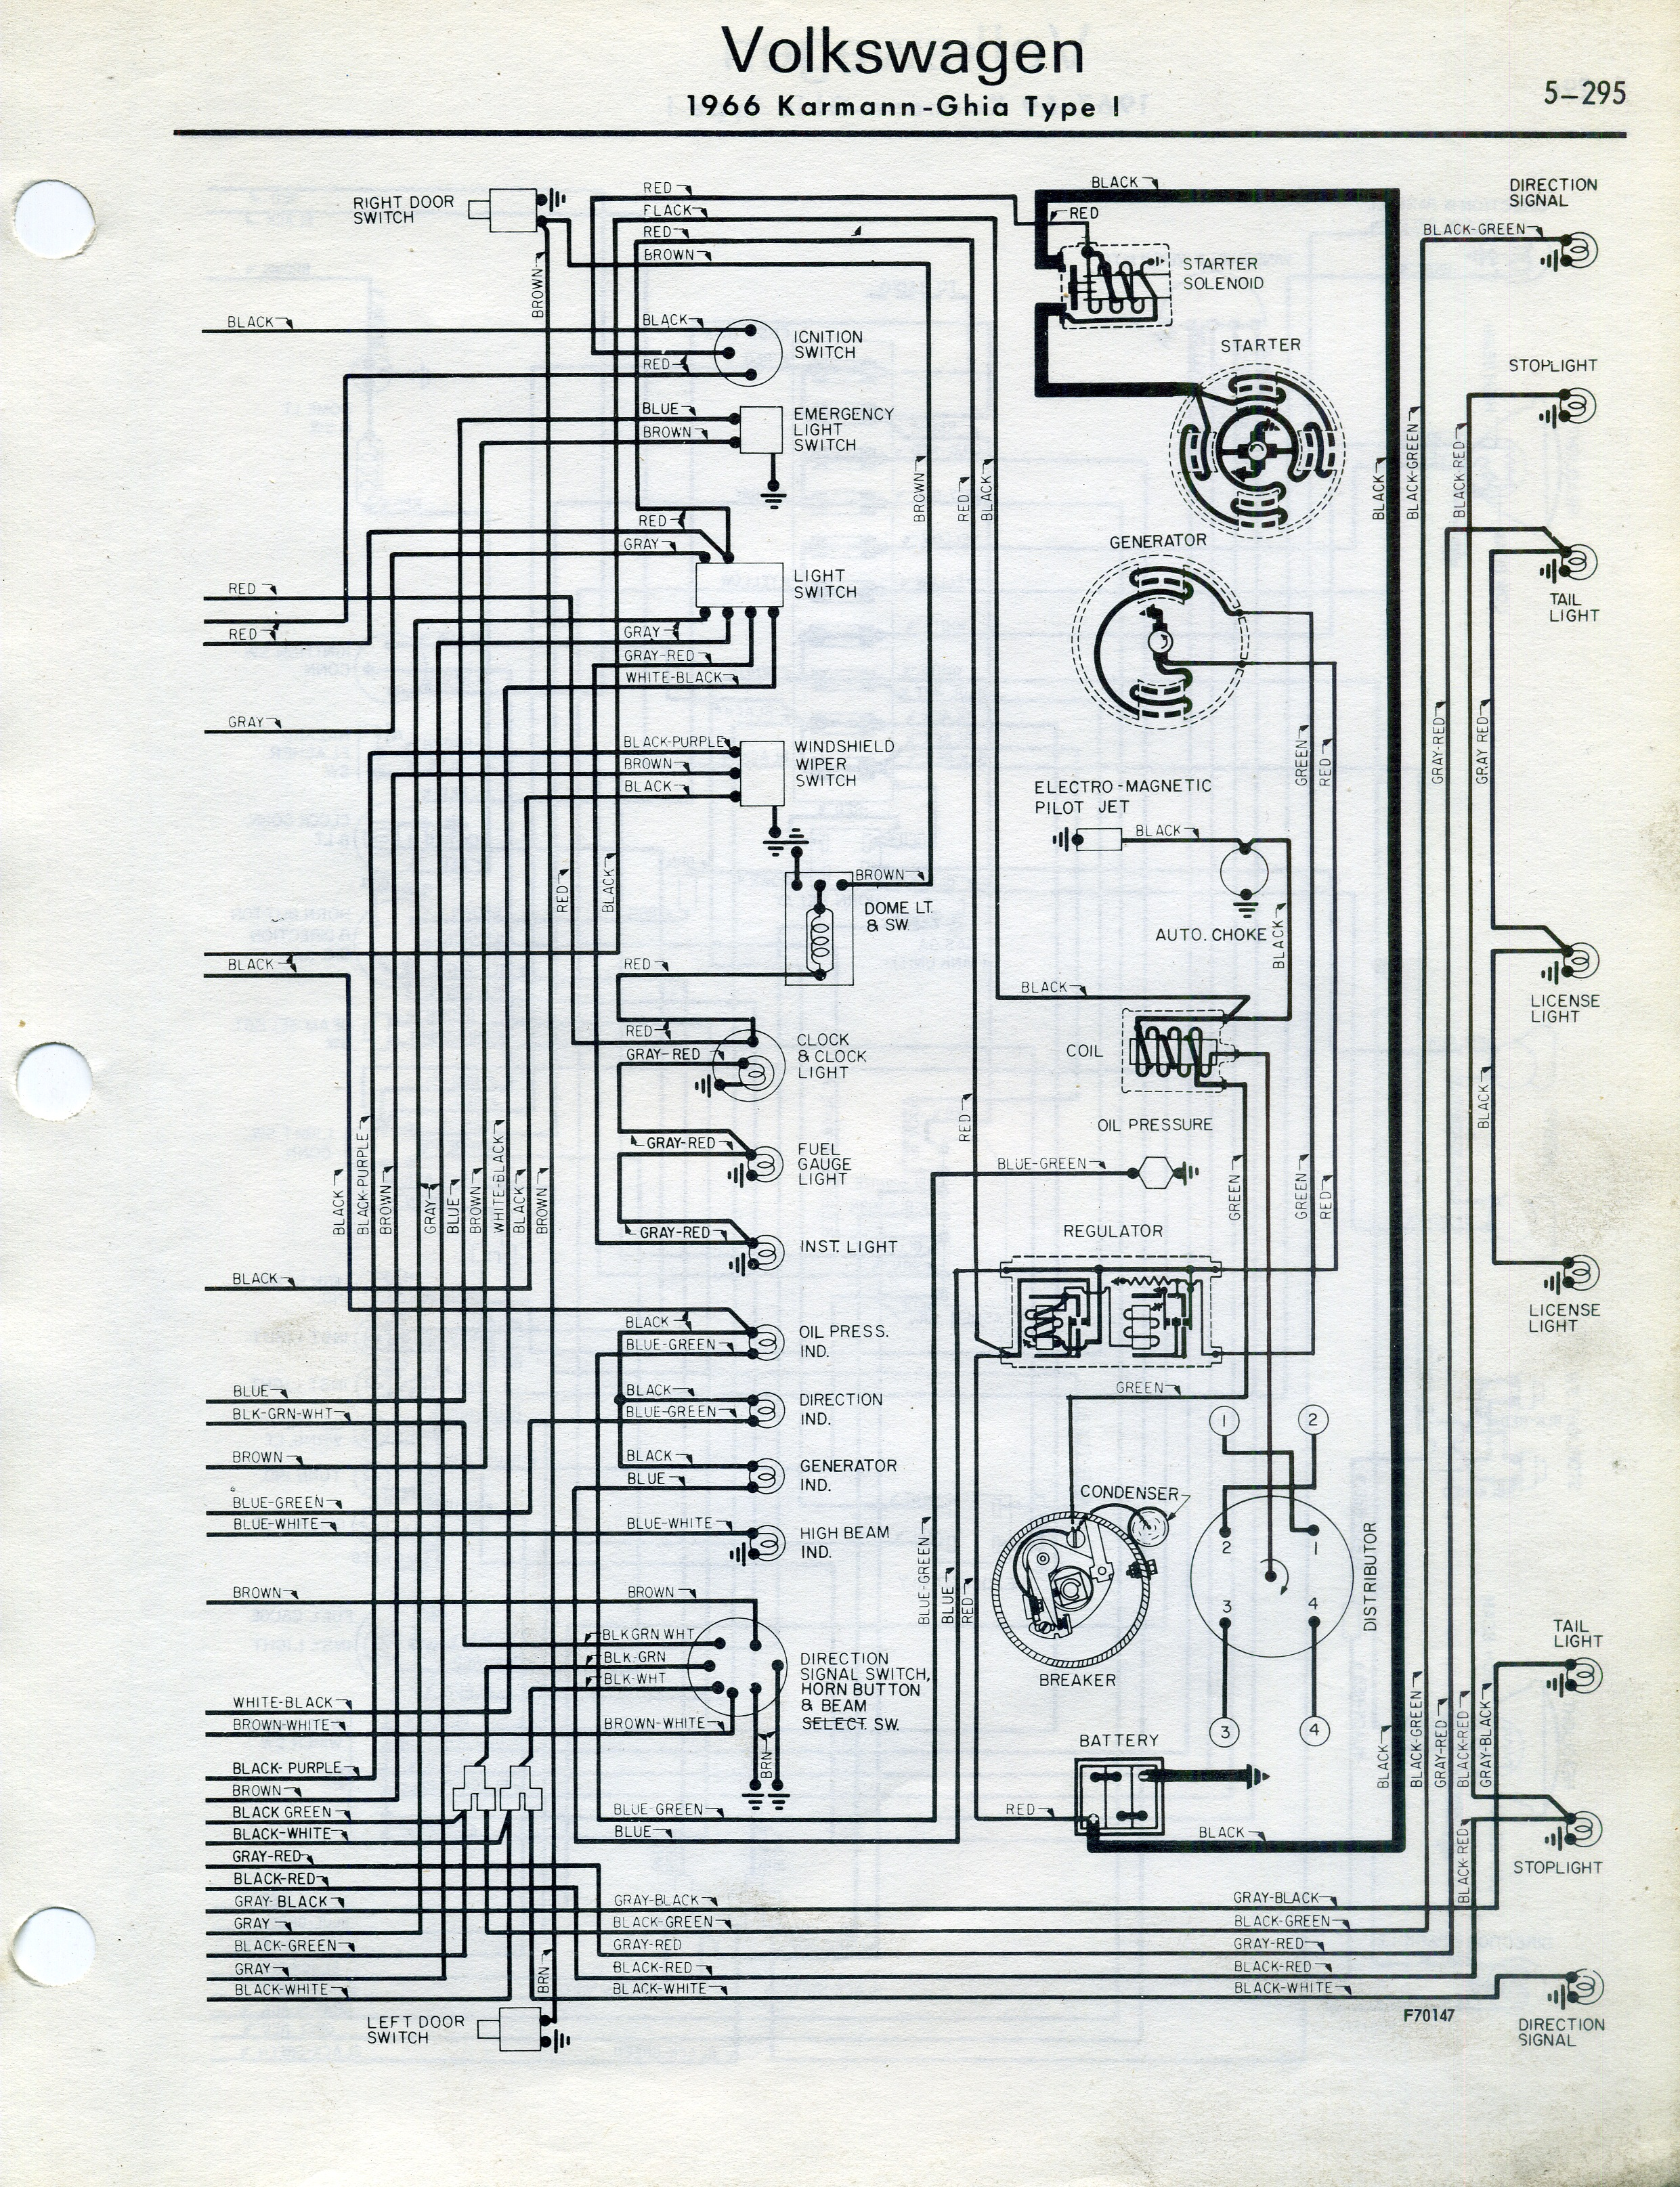 Start Run Capacitor Wiring Diagram Likewise 2jz Ecu Wiring Diagram